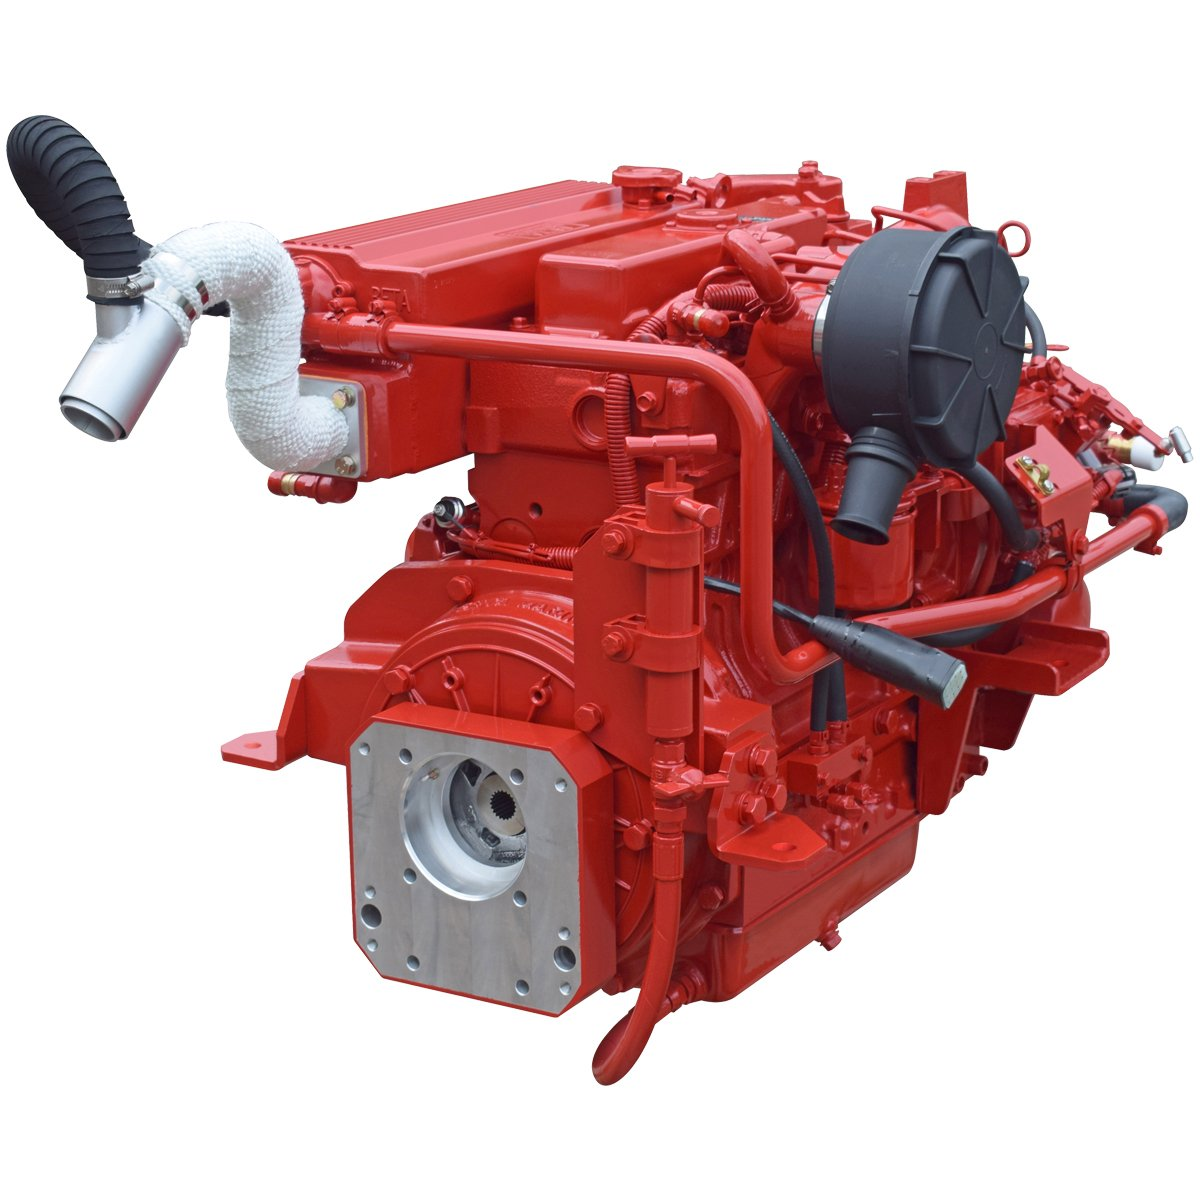 Beta Marine USA - marine diesel saildrive engines - Beta 43SD heat exchanger saildrive engine